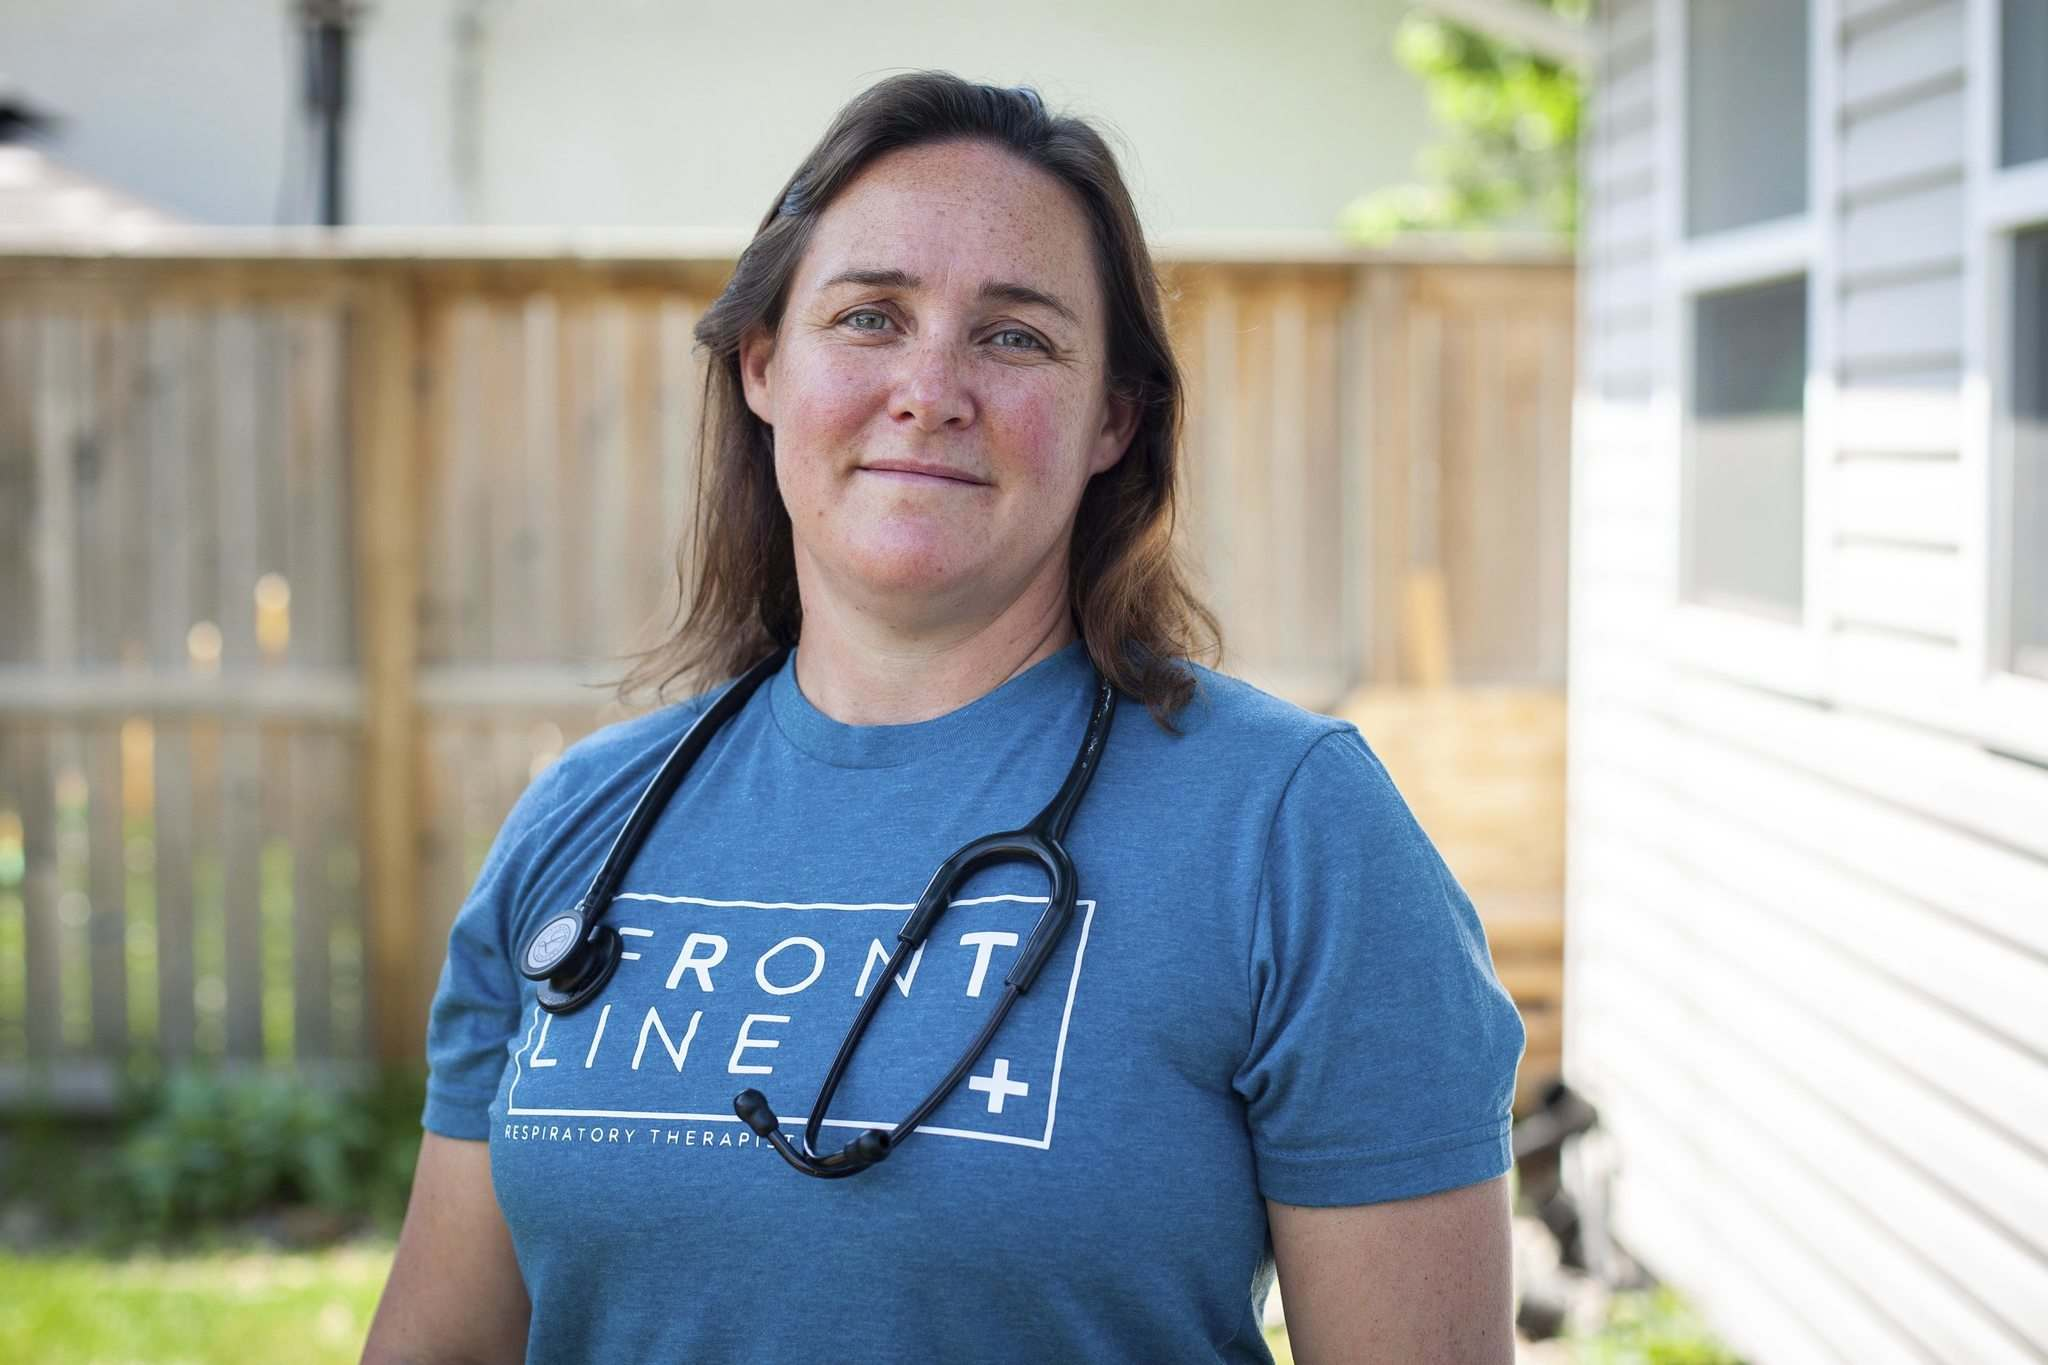 By the time HSC respiratory therapist Melissa Burdy treats her patients, they are in such dire straits they likely won't remember her. (Daniel Crump / Winnipeg Free Press)